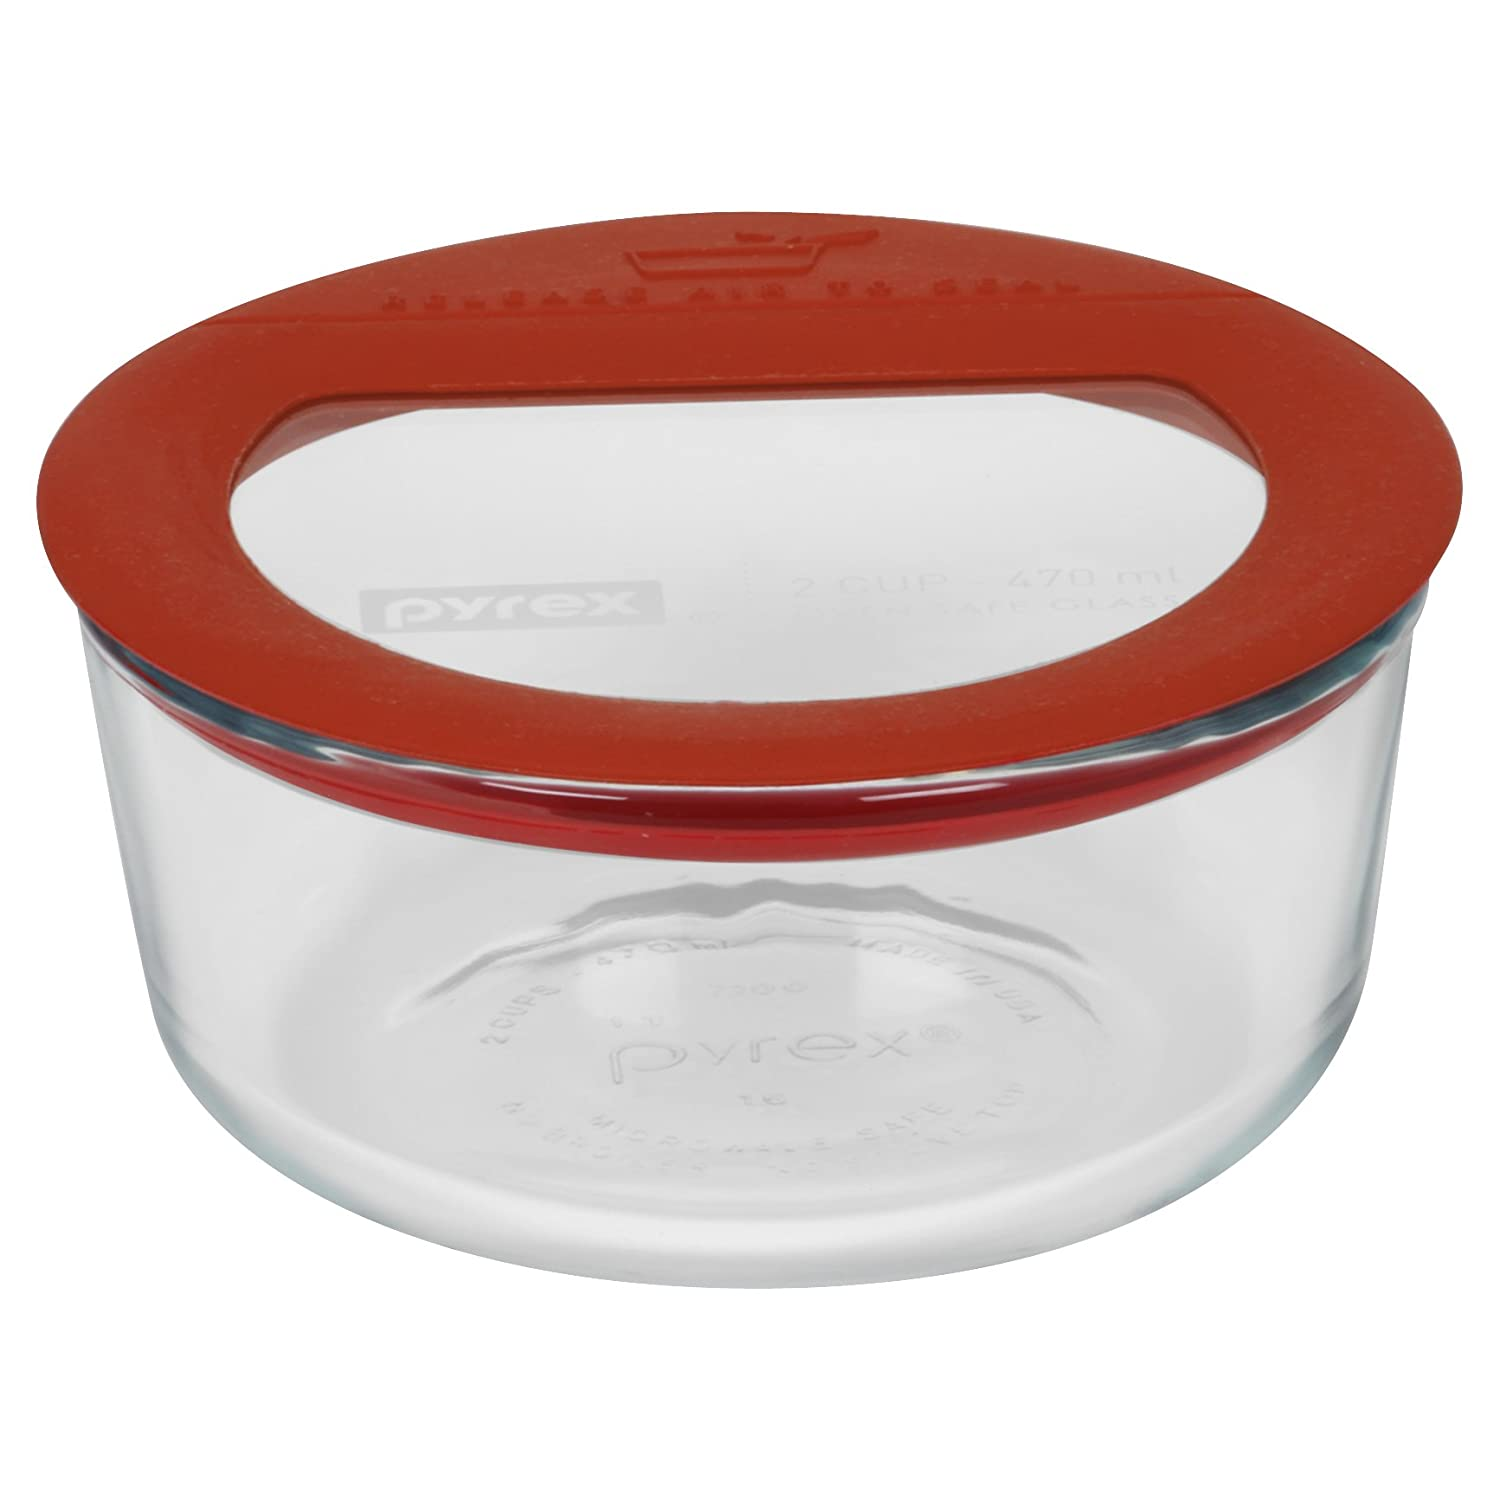 Round Storage Containers Storage Container With Lid